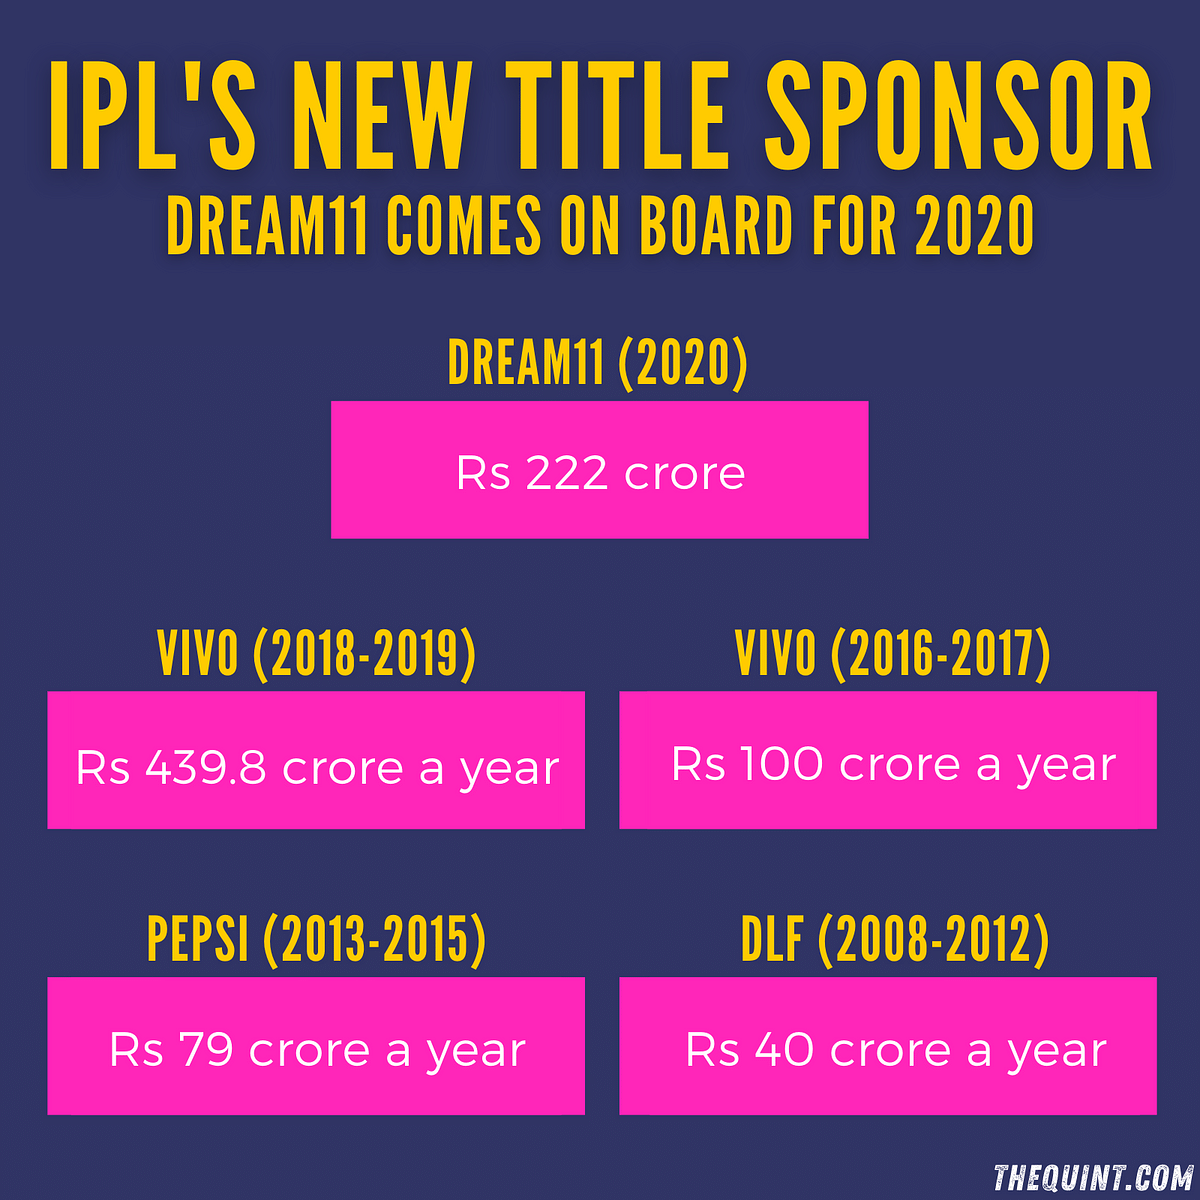 Dream11 Wins IPL Title Sponsorship For Rs 222 Crore: Reports